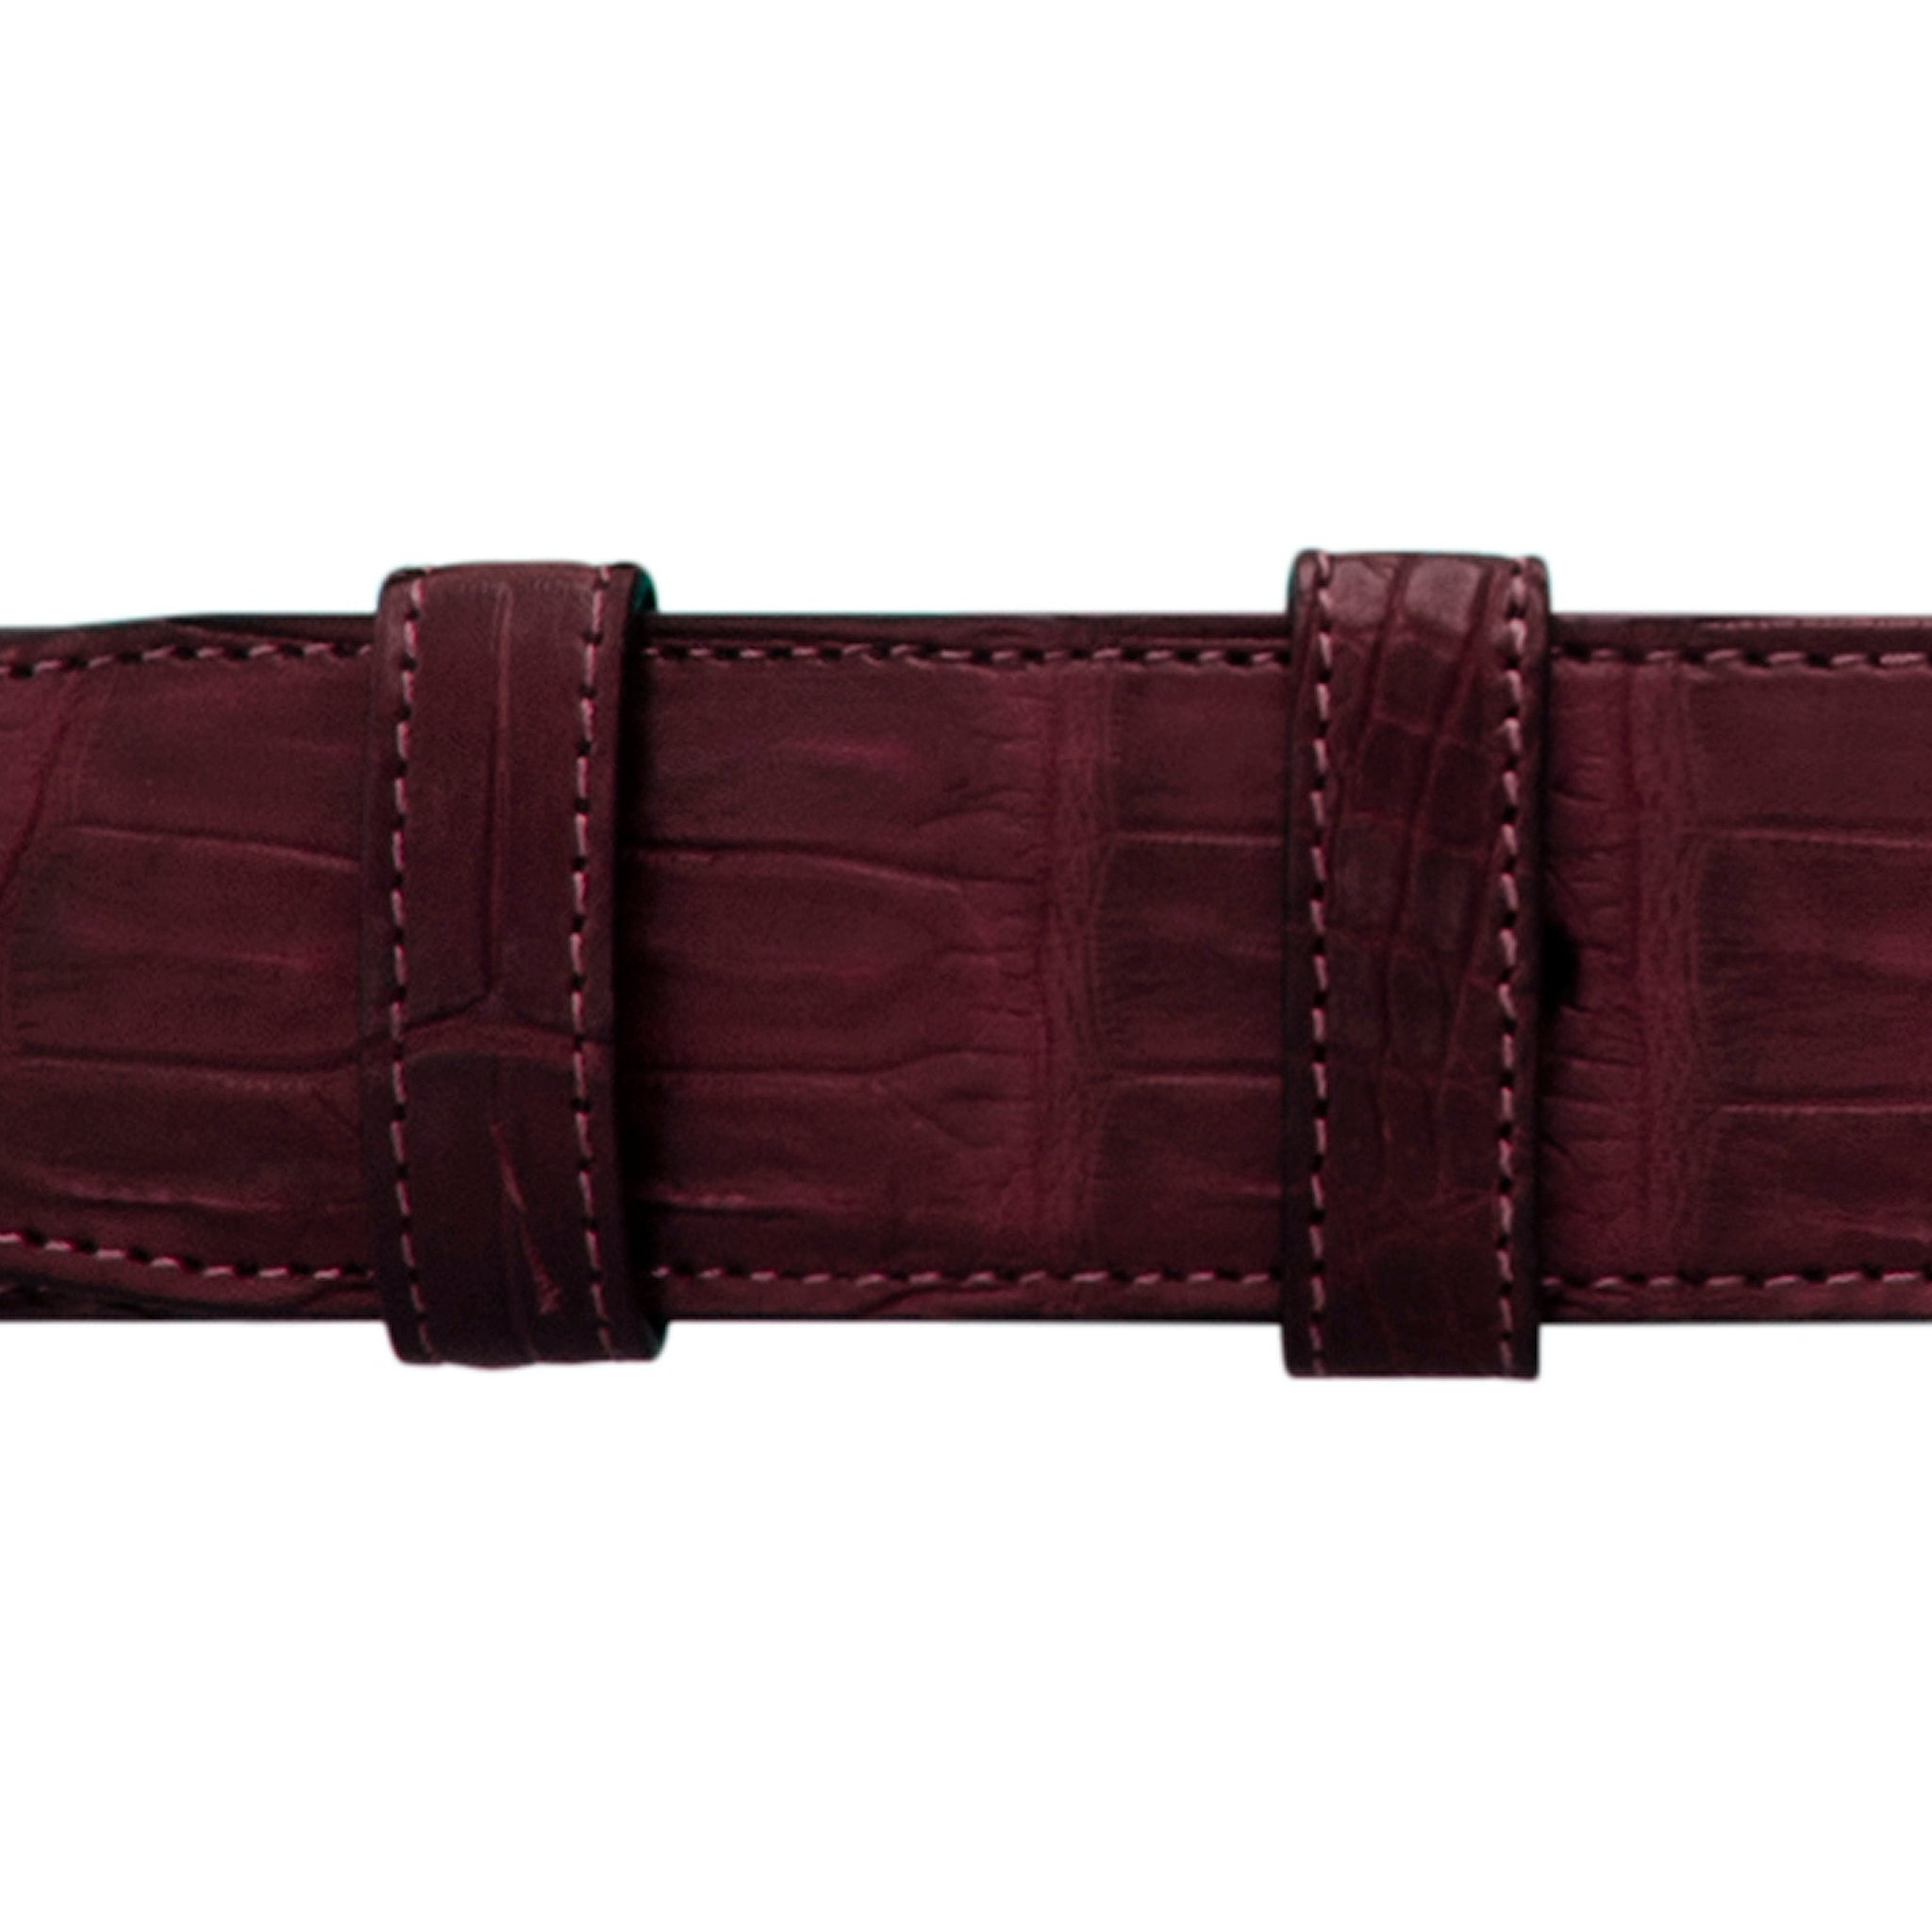 "1 1/4"" Burgundy Seasonal Belt with Derby Cocktail Buckle in Polished Nickel"